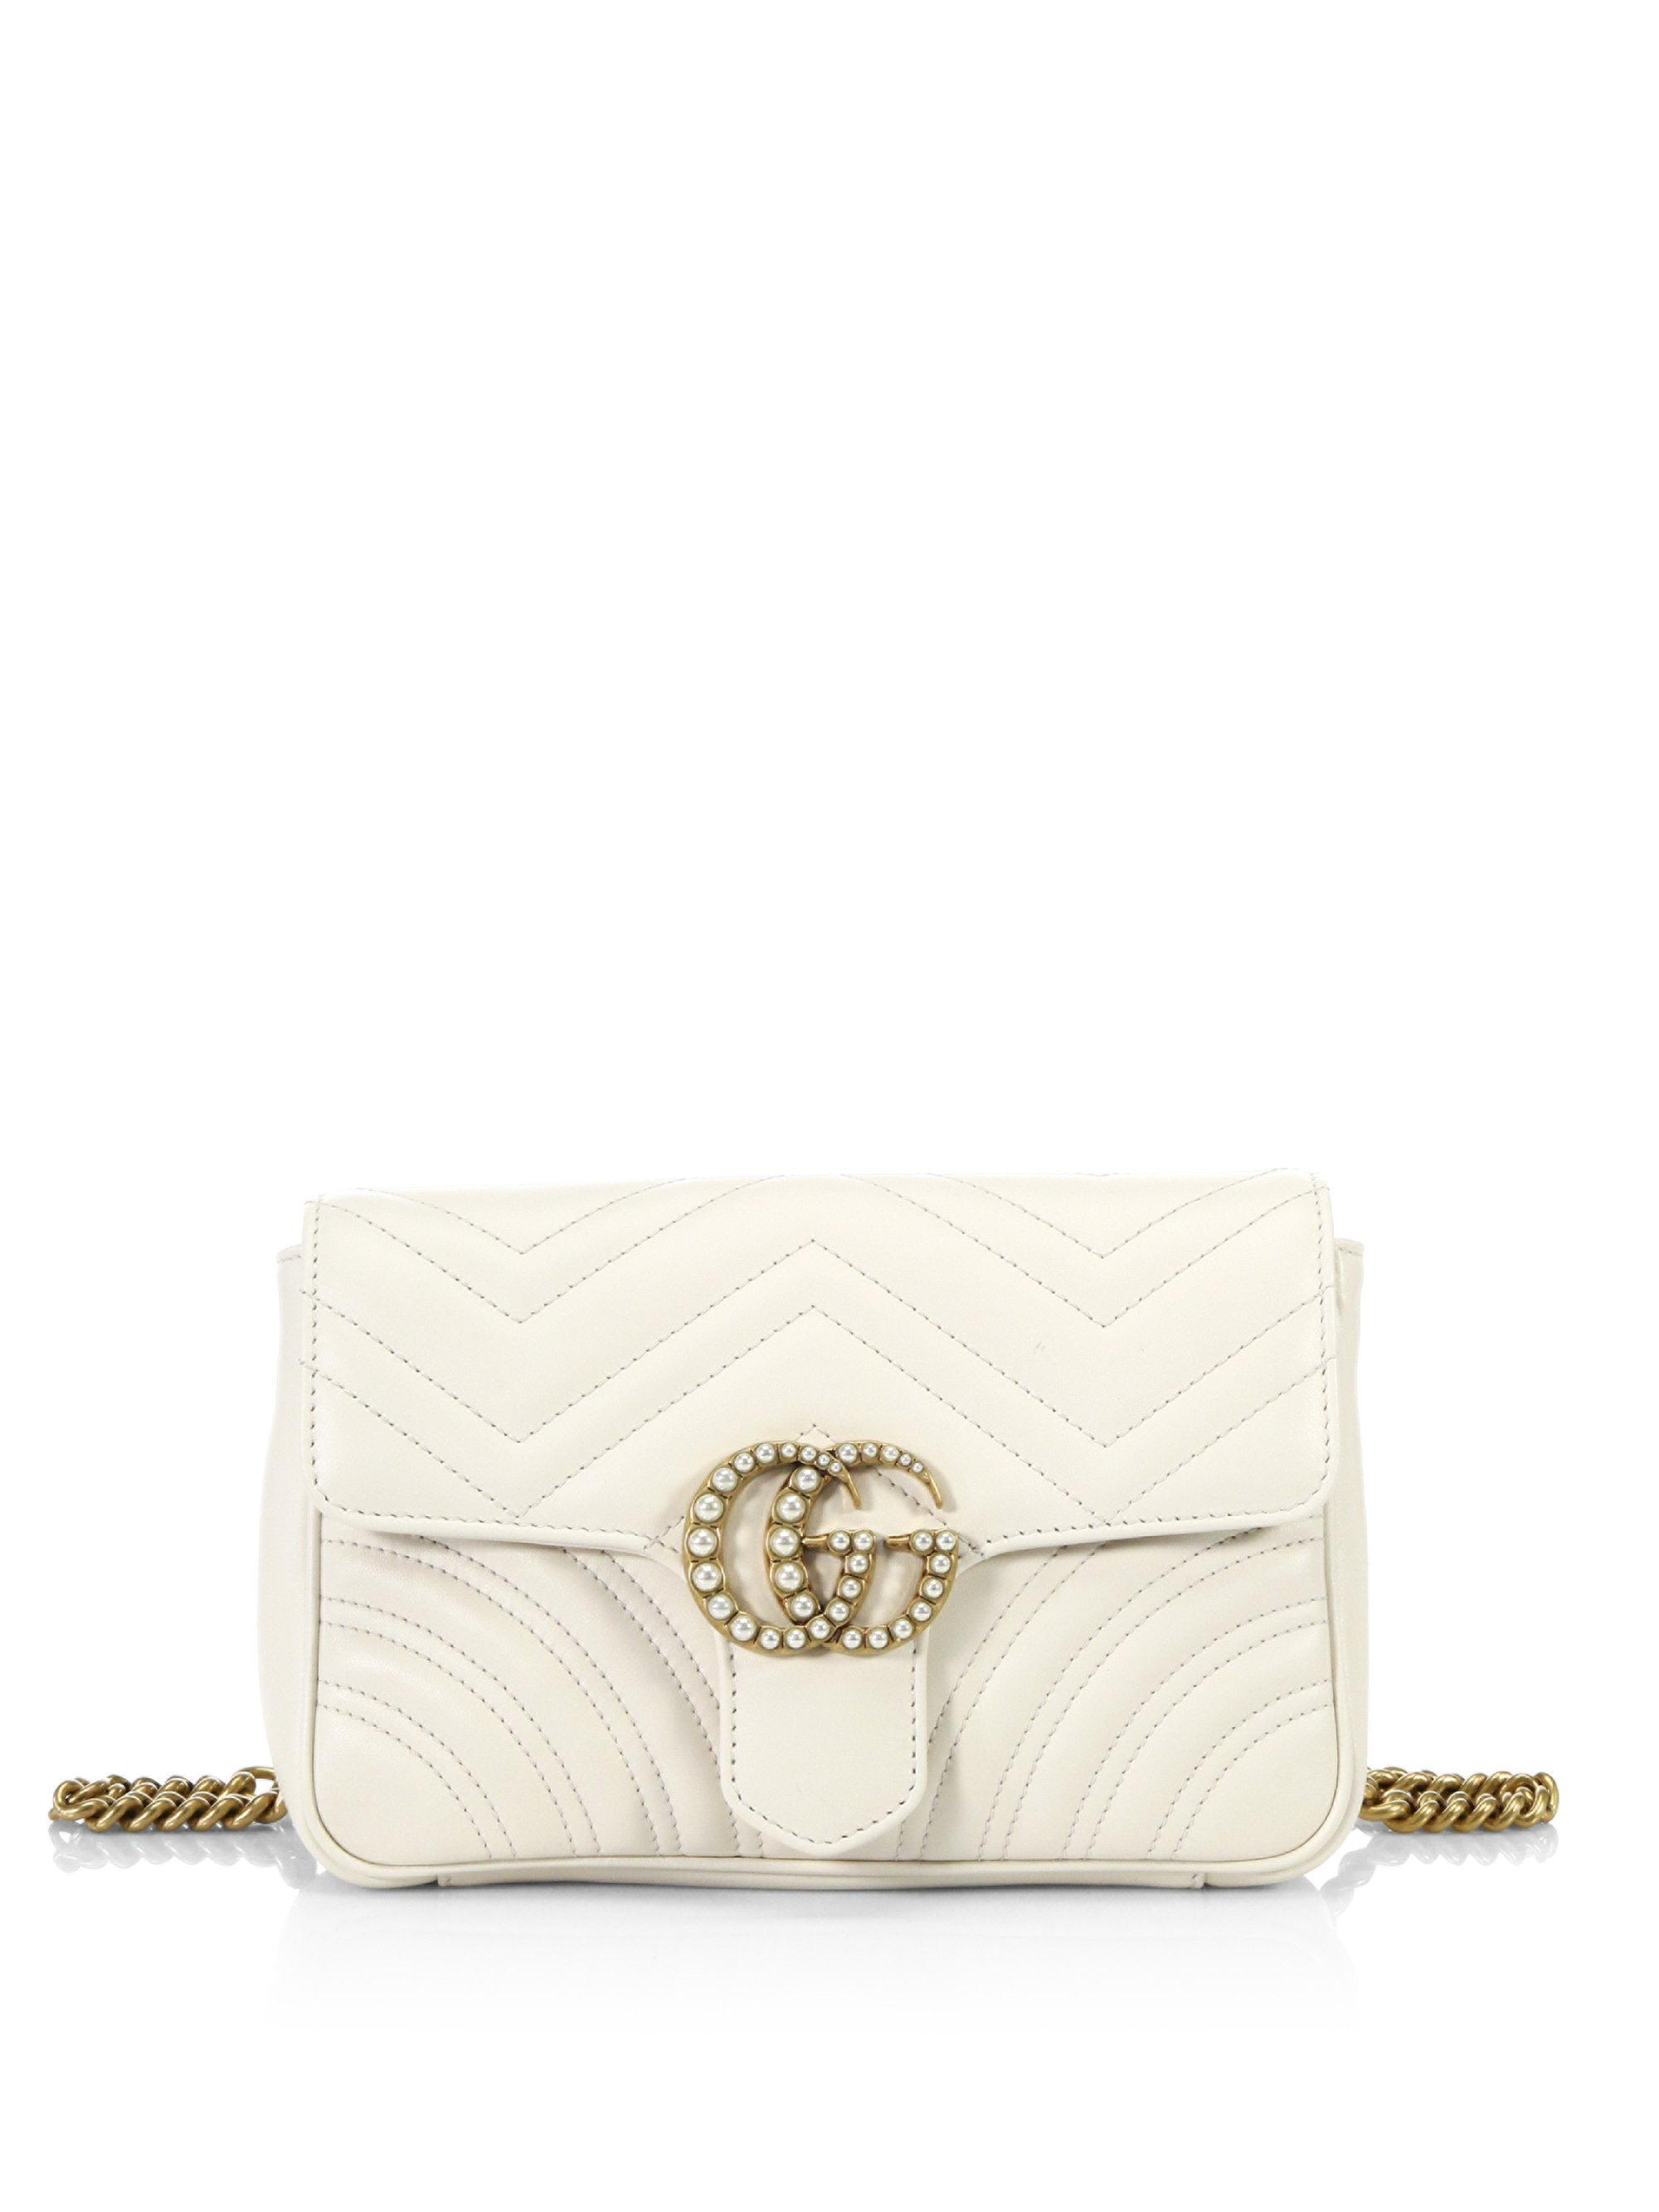 c9129b5a866 Lyst - Gucci Gg Marmont Quilted Leather Chain Belt Bag in White